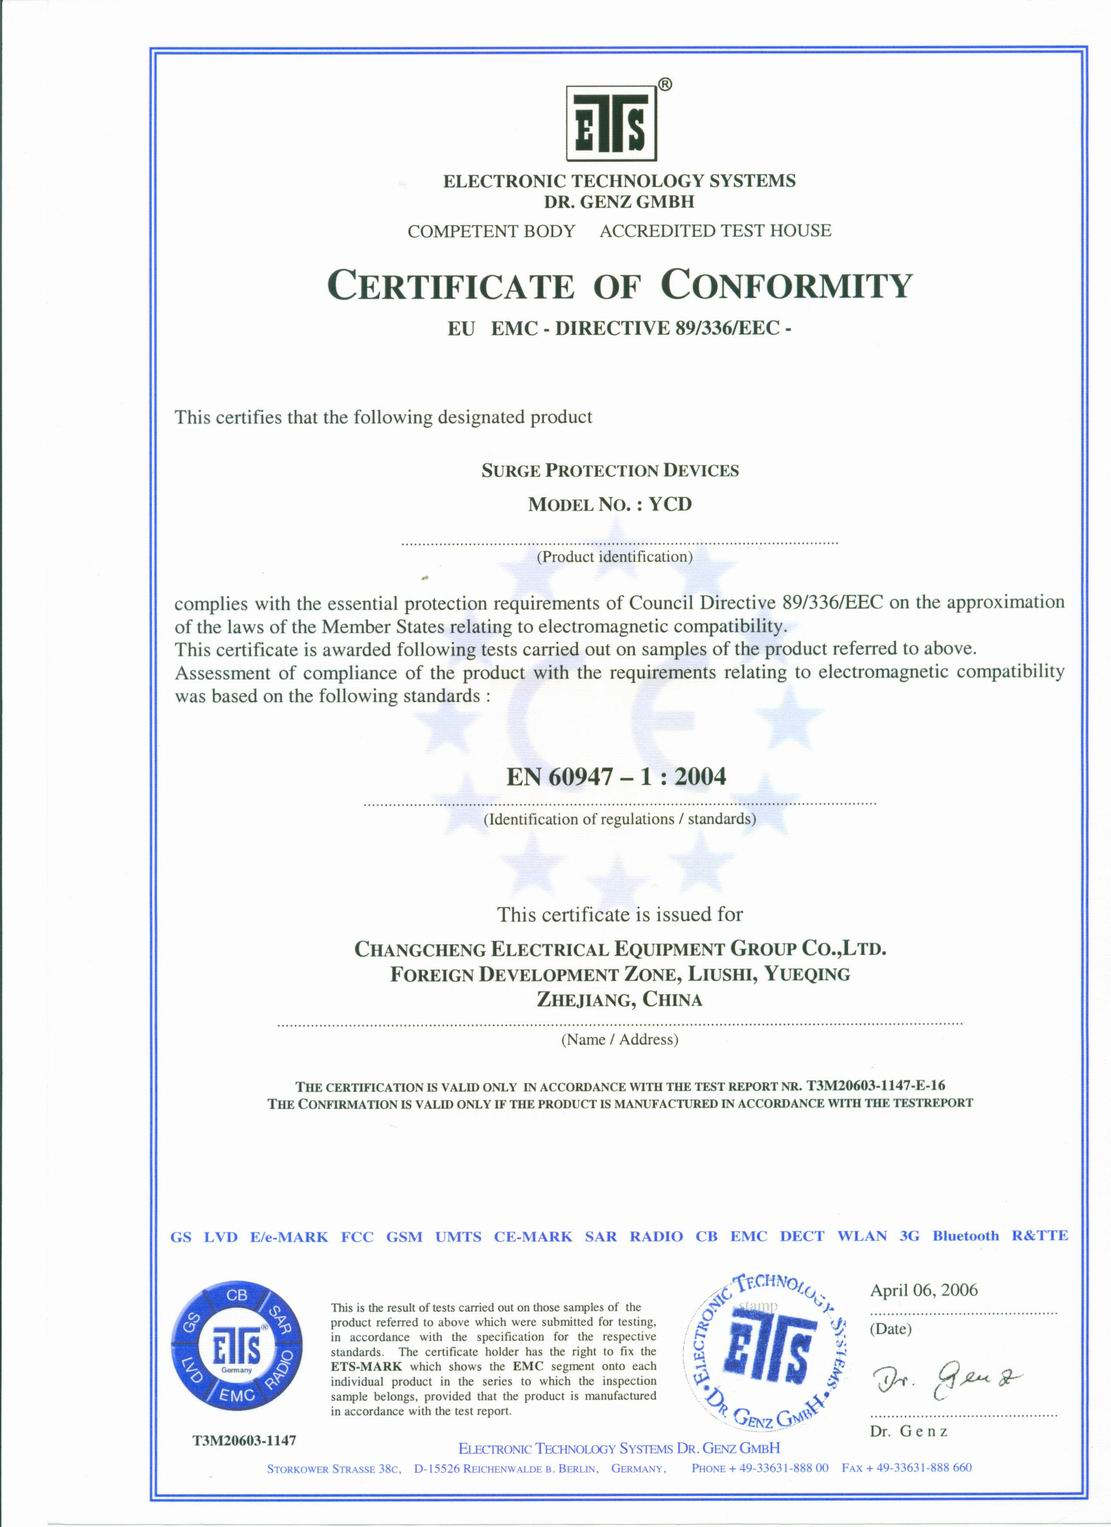 CE Certificate for YCD Surge Protection Device